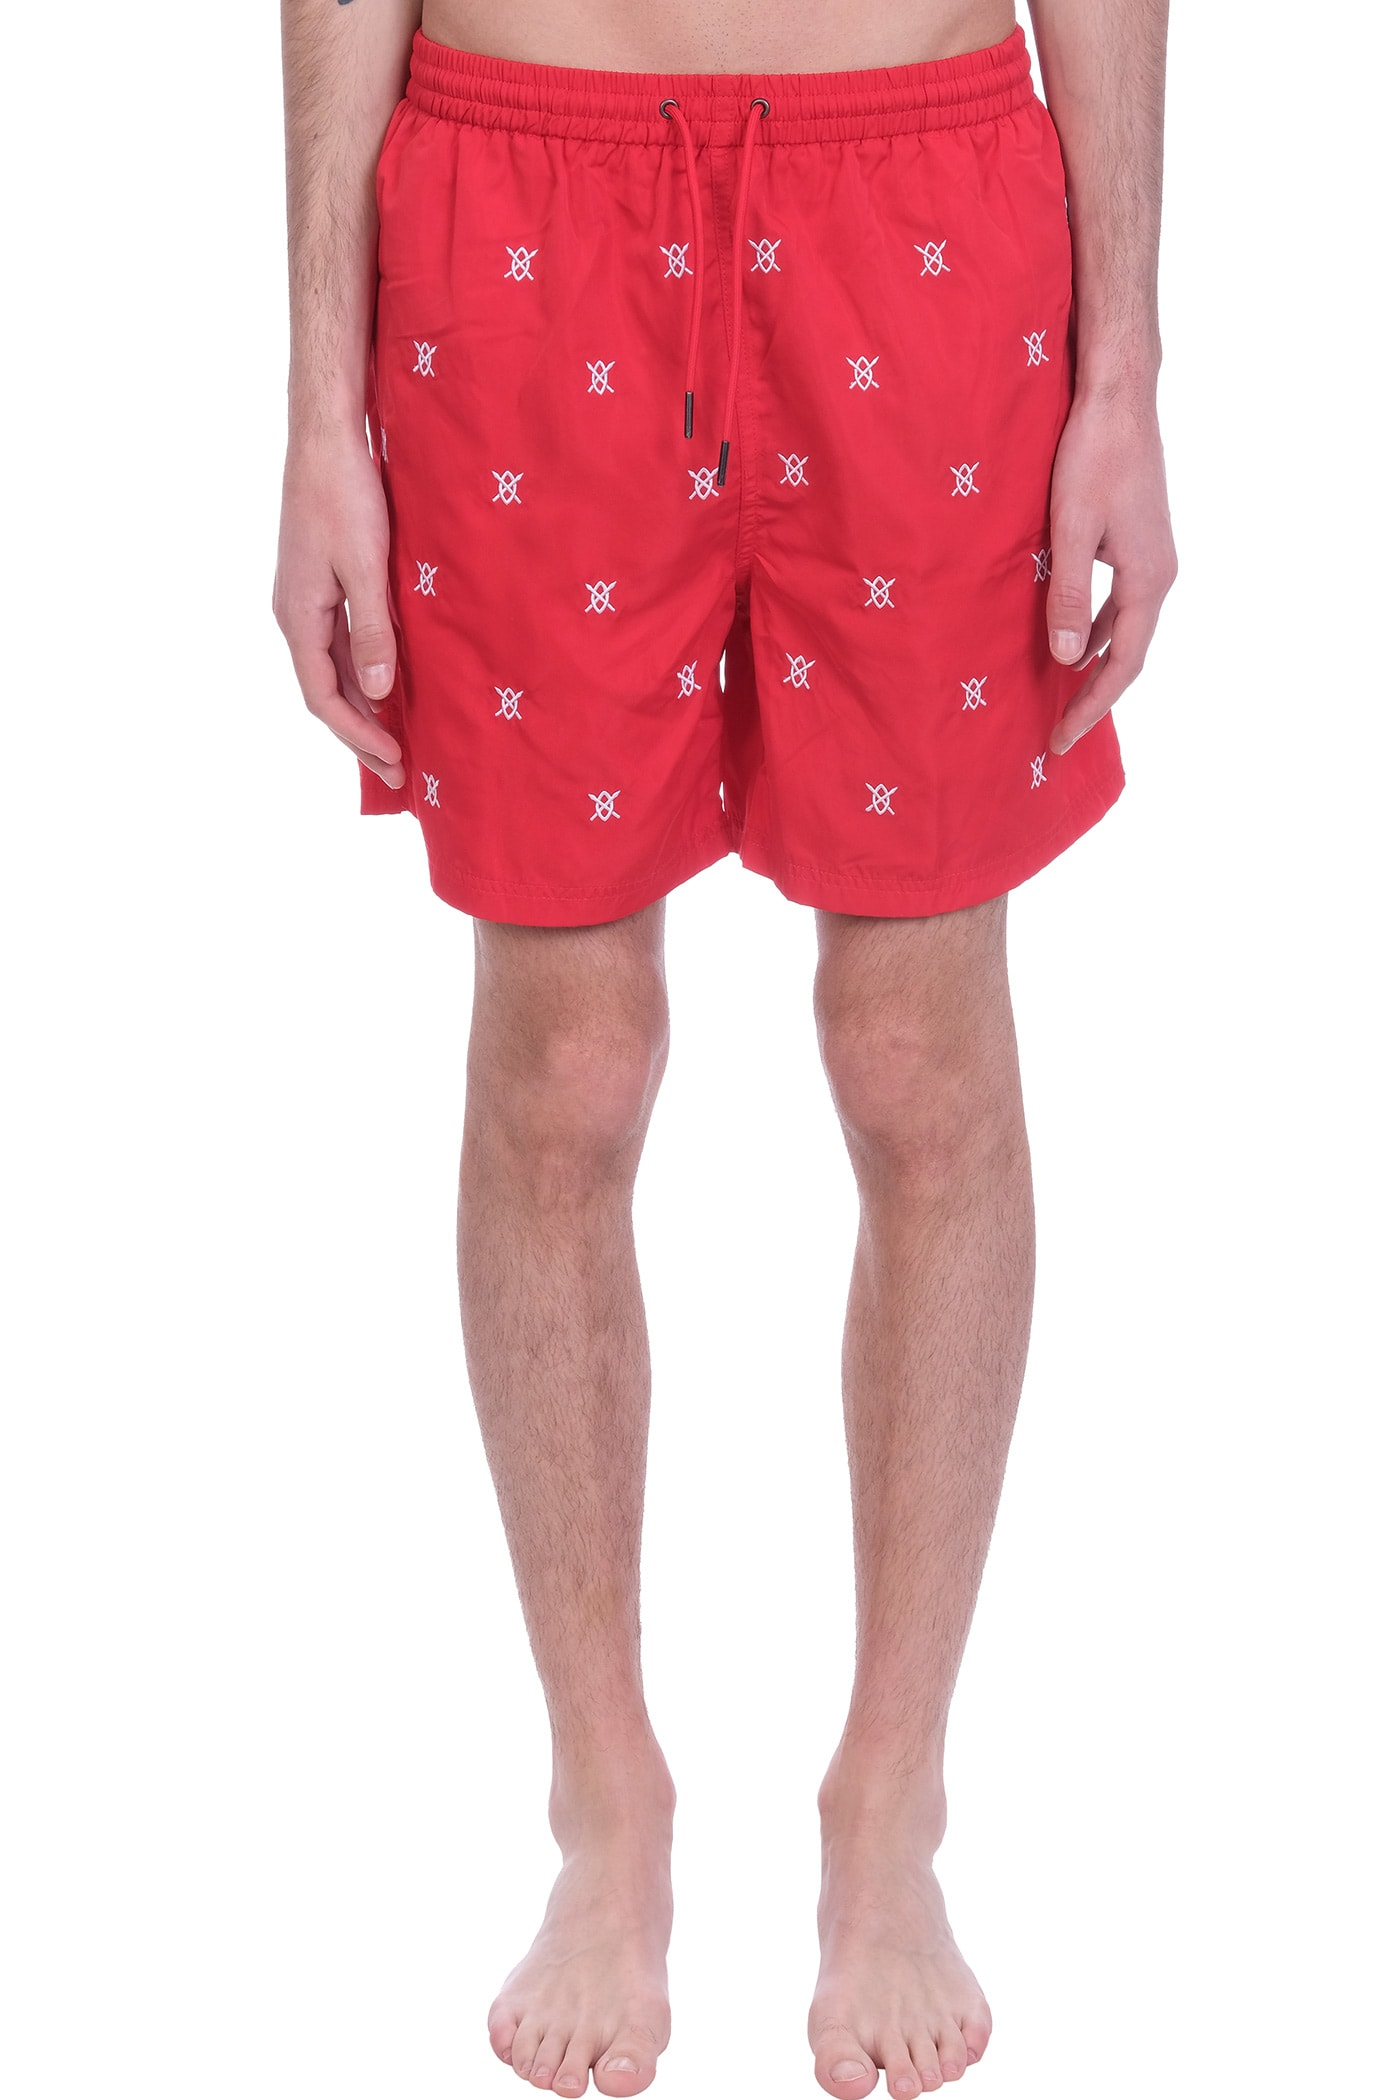 Daily Paper Clothing BEACHWEAR IN RED POLYESTER